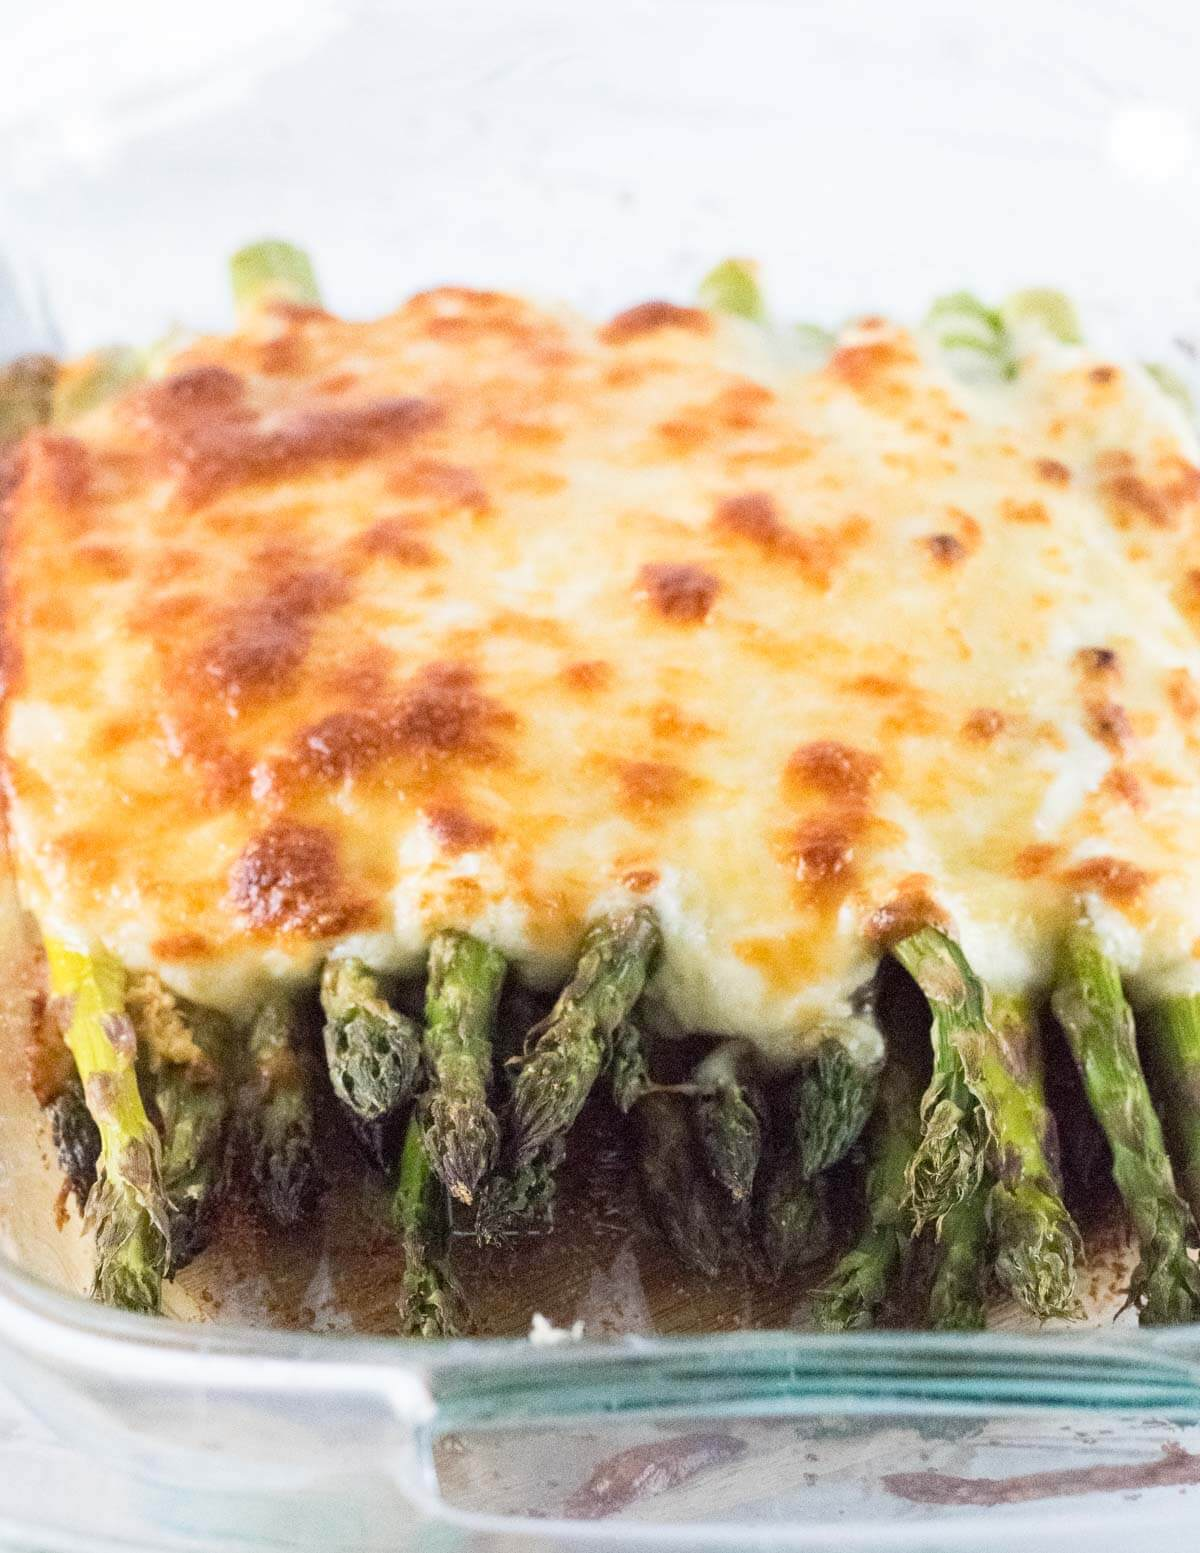 Close up view of baked asparagus with cheese melted on top.